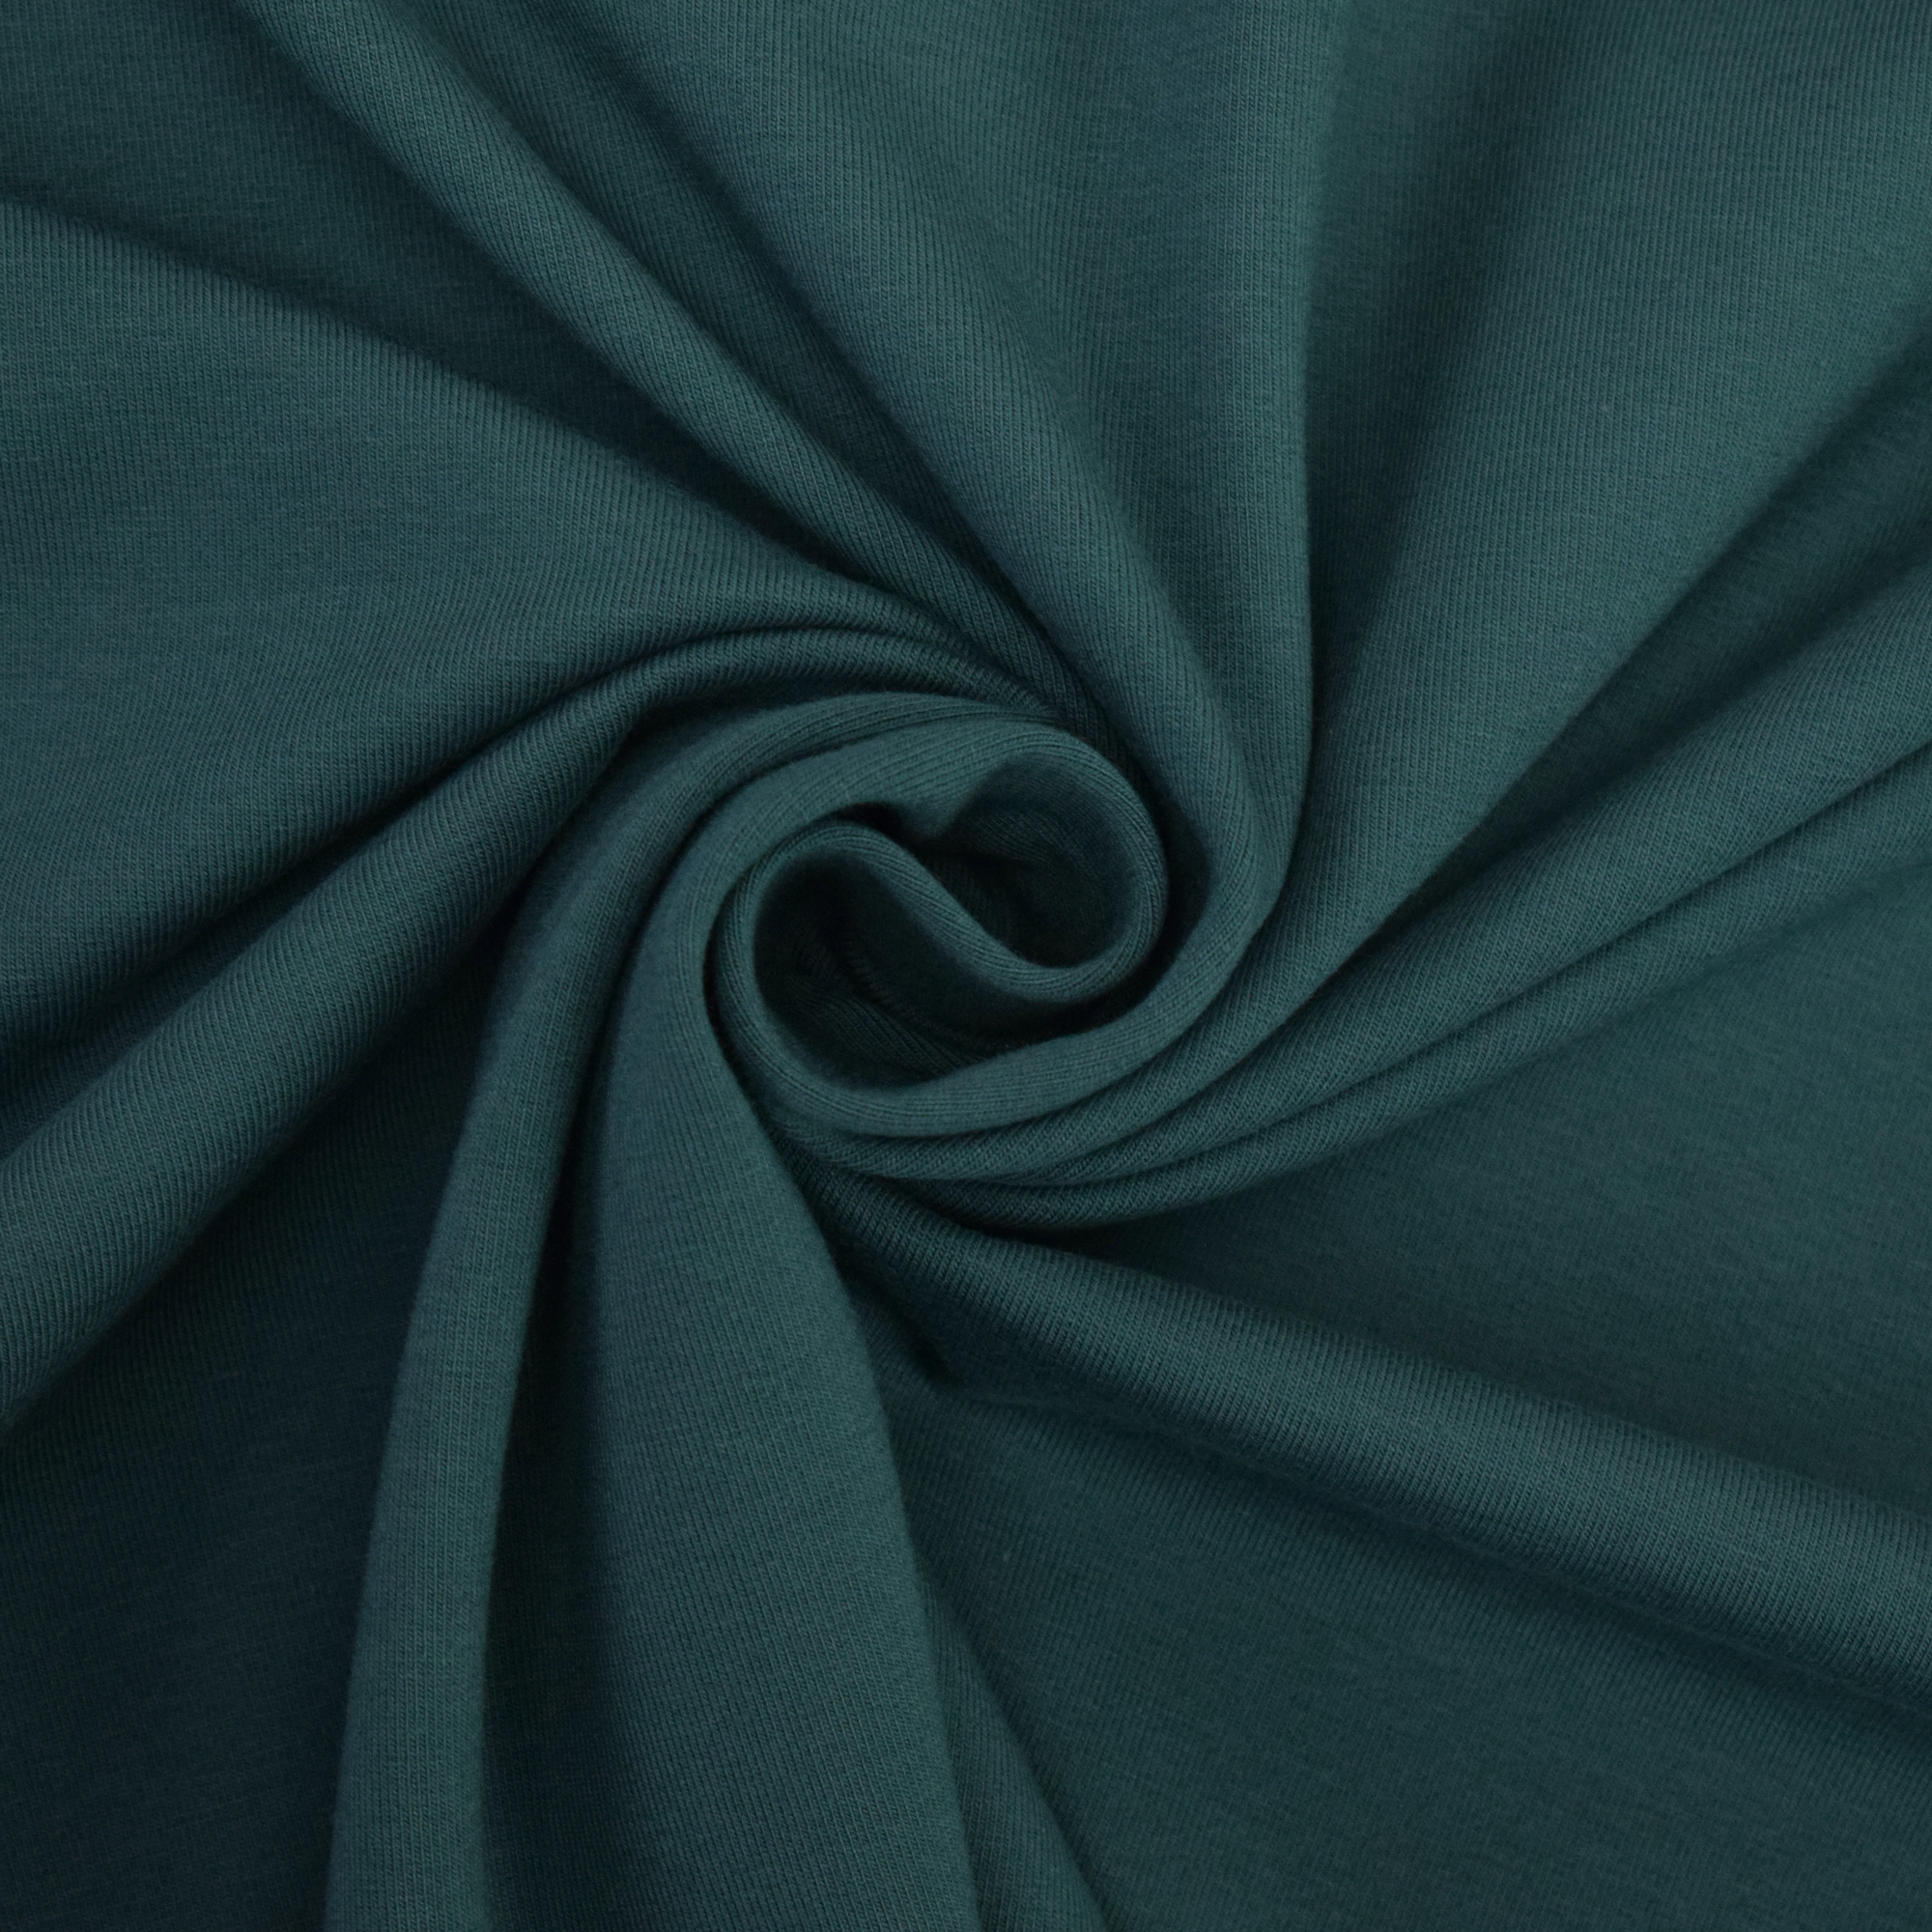 Cotton jersey plain, dark teal | 124.554-3485 | petrol